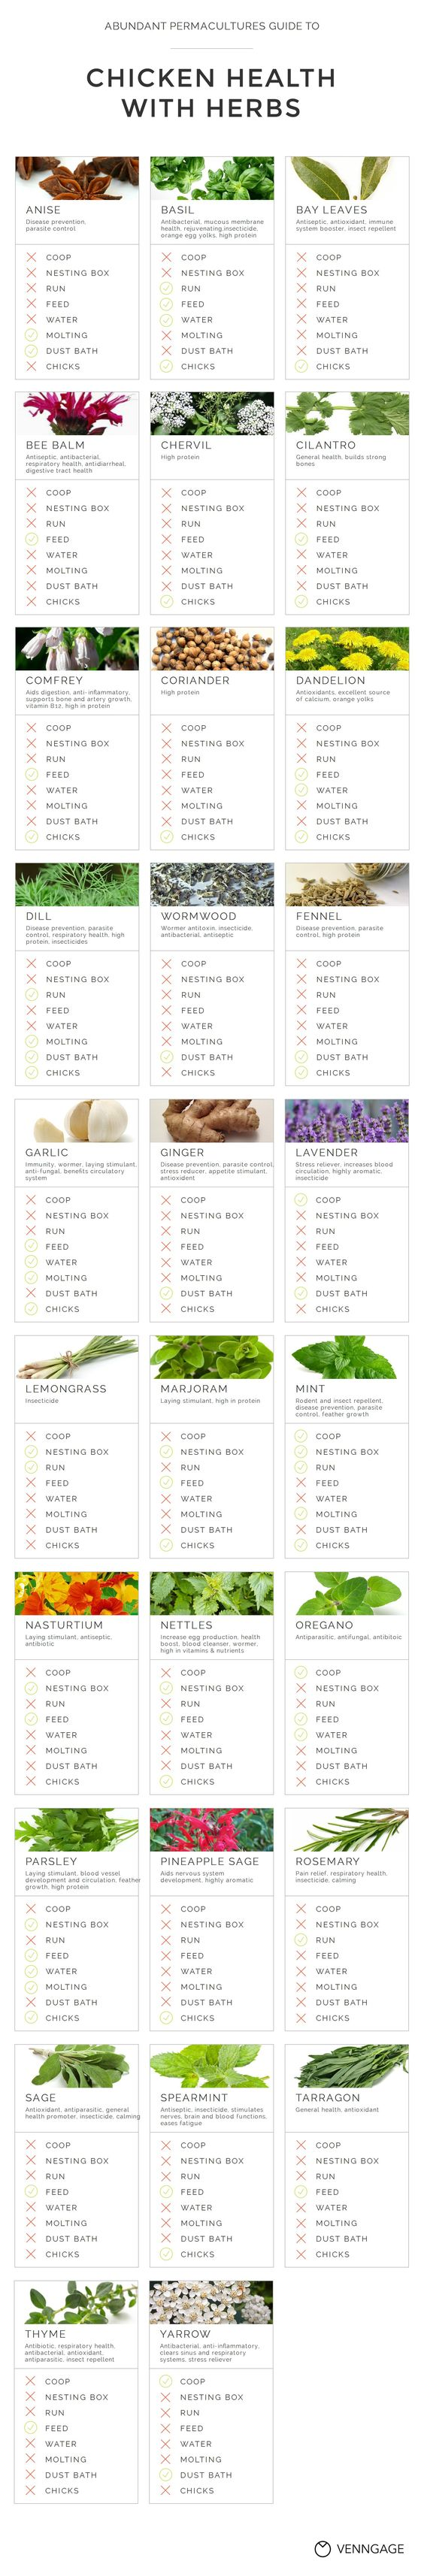 The ultimate chart of herbs for chicken health. Herbs are key to raising chickens naturally.